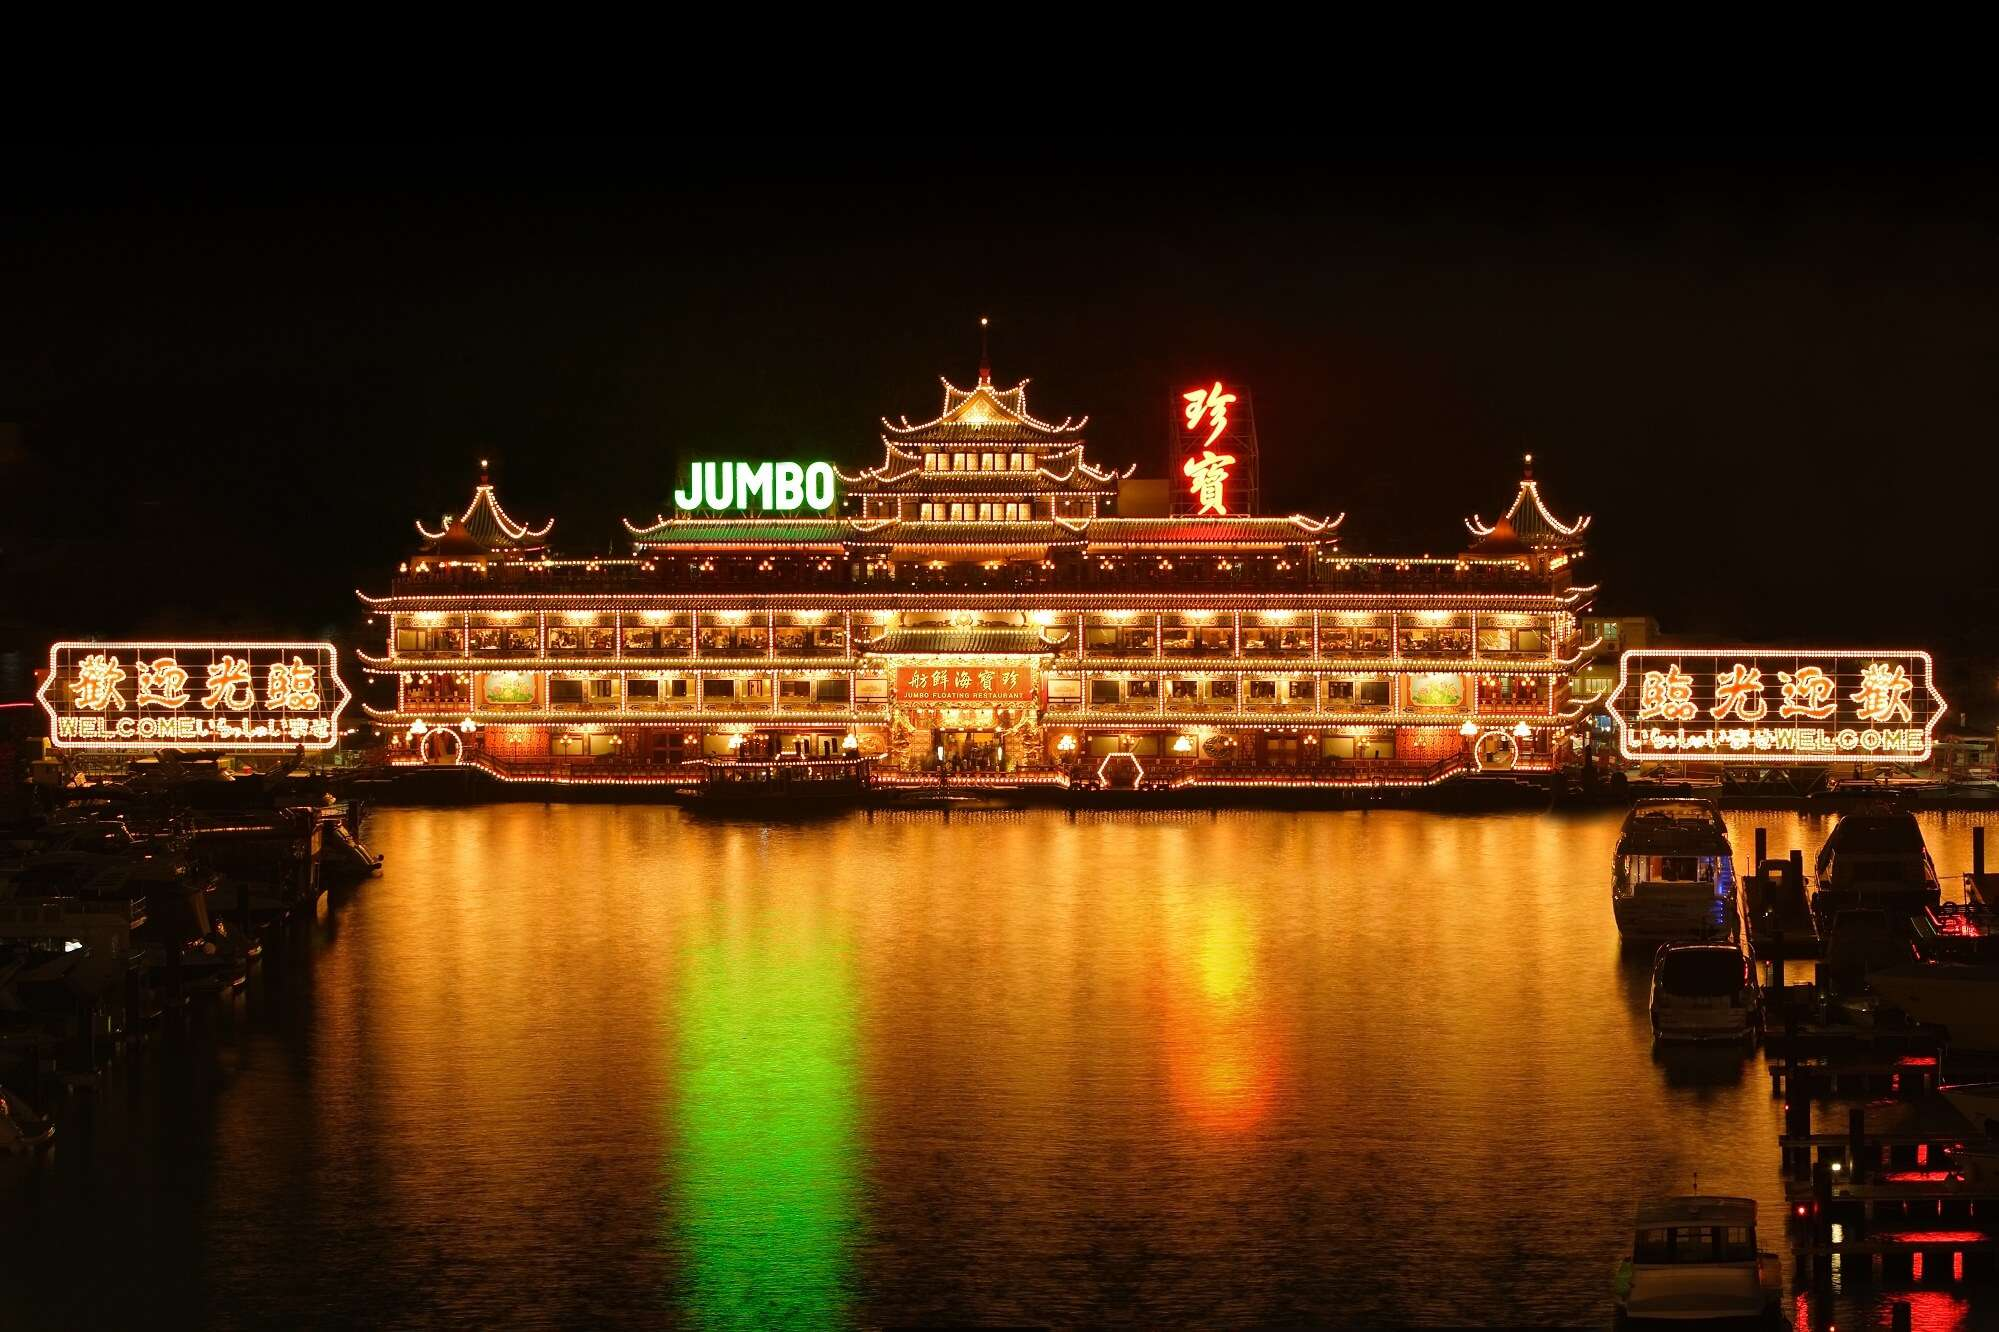 Reflection of Jumbo Kingdom restaurant on water at night